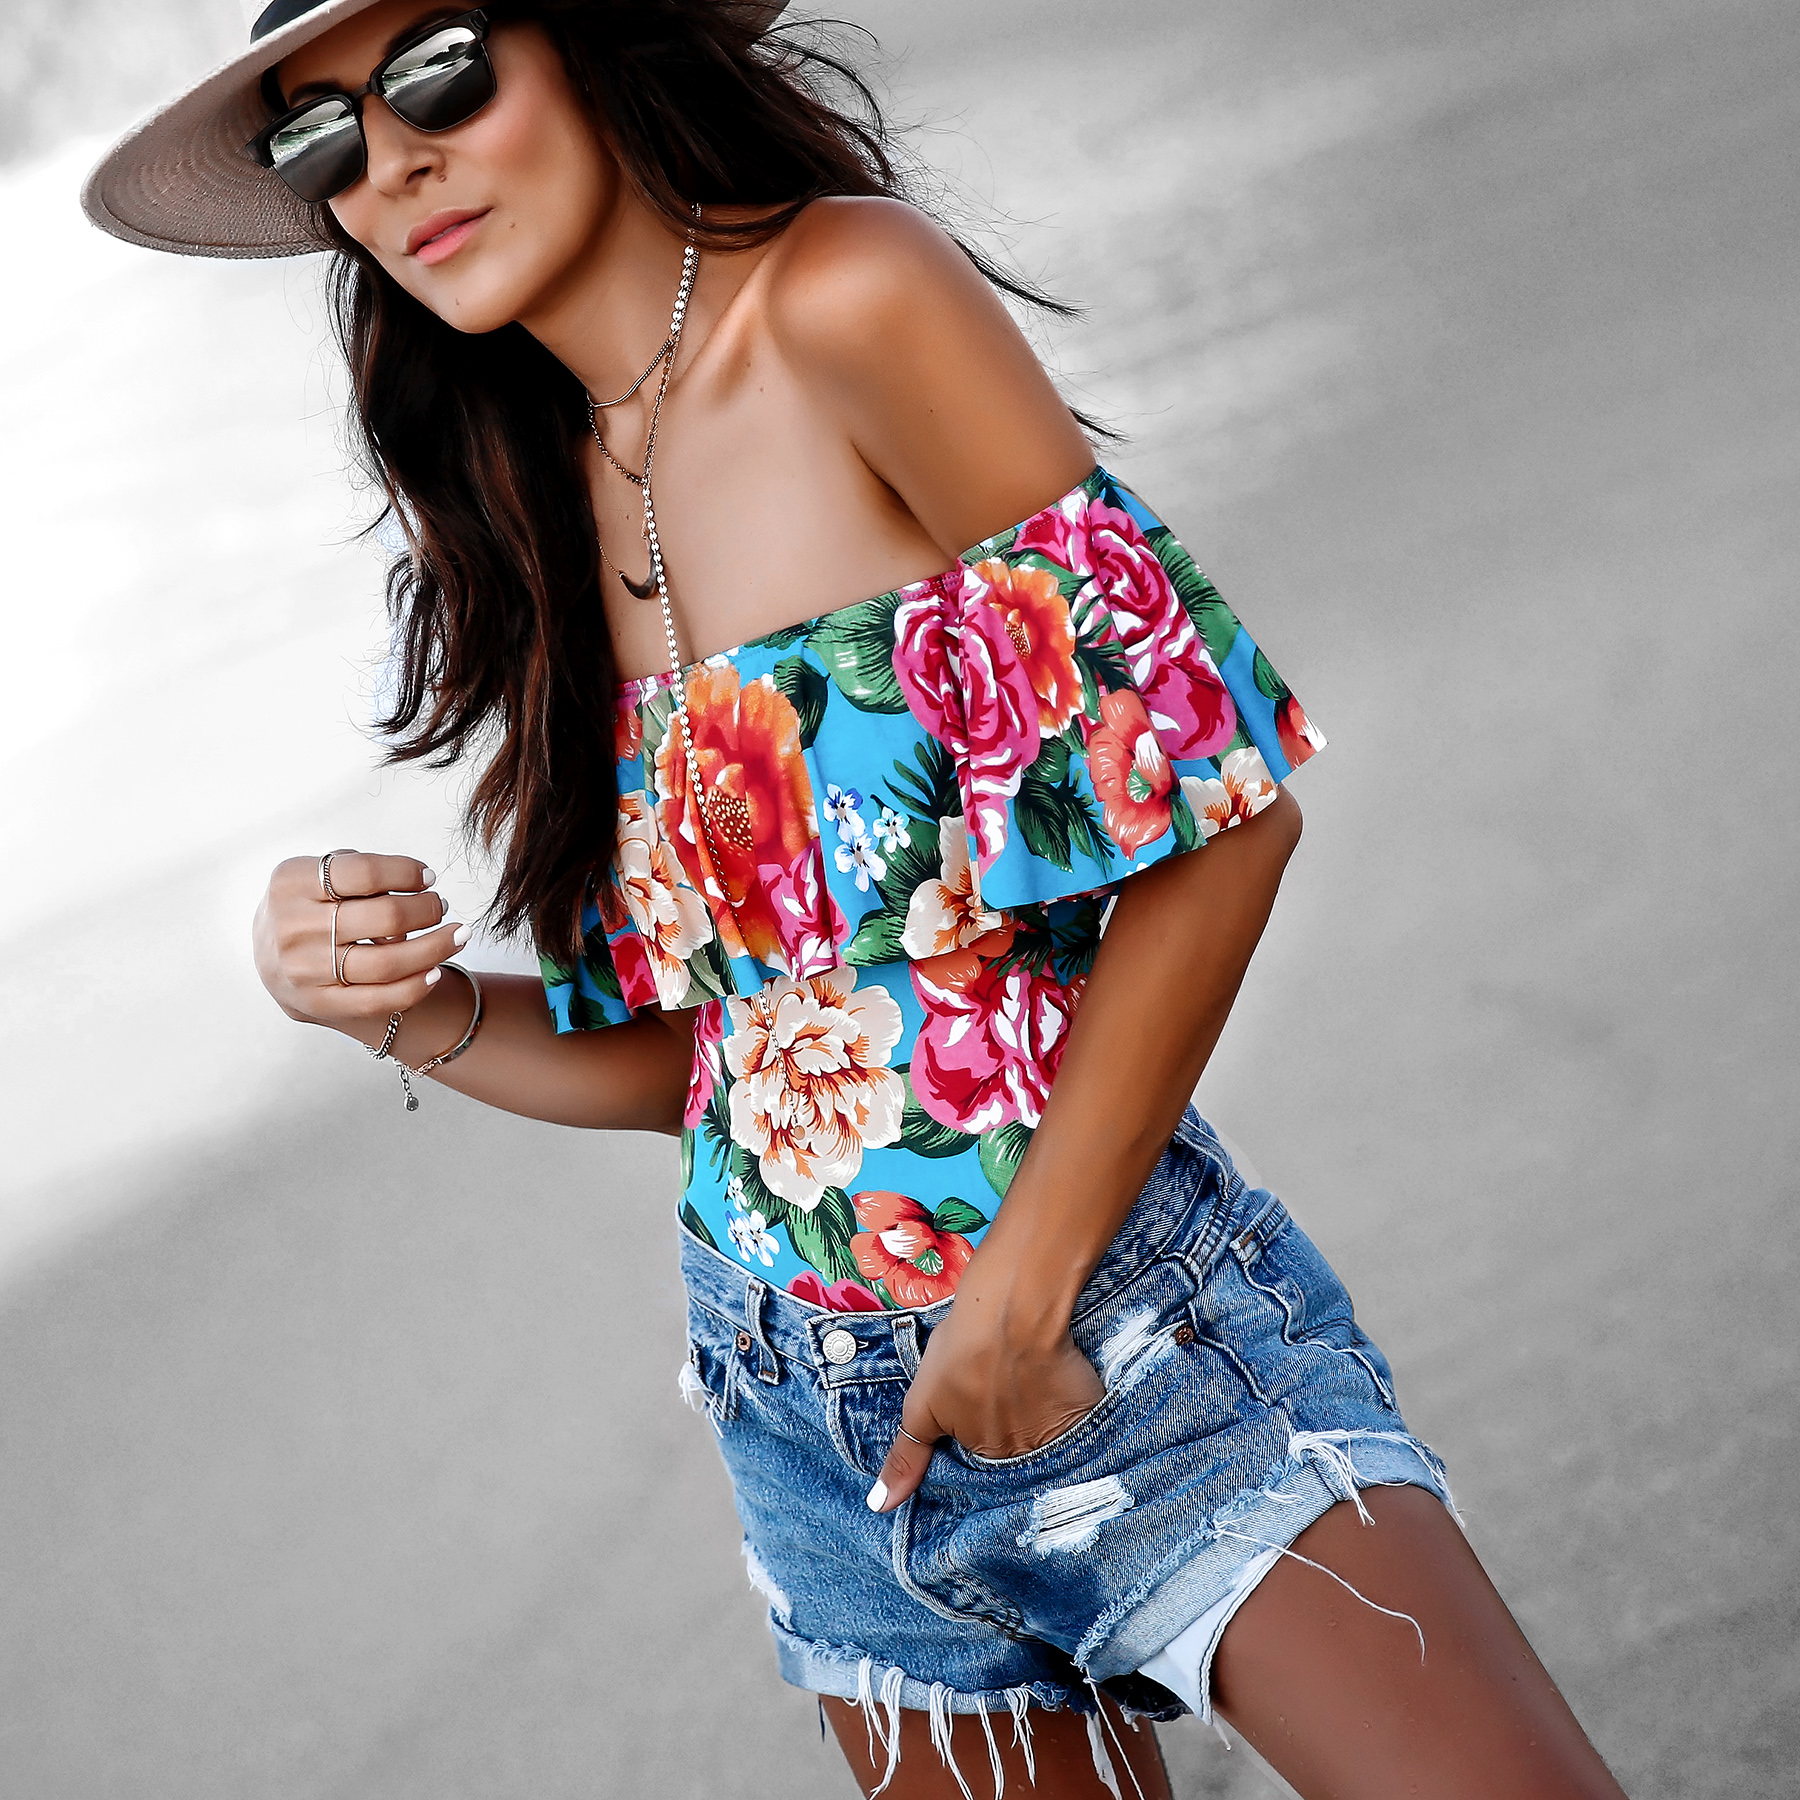 Maui Jim Sunglasses LEvis Shorts Beach Fashion.jpg